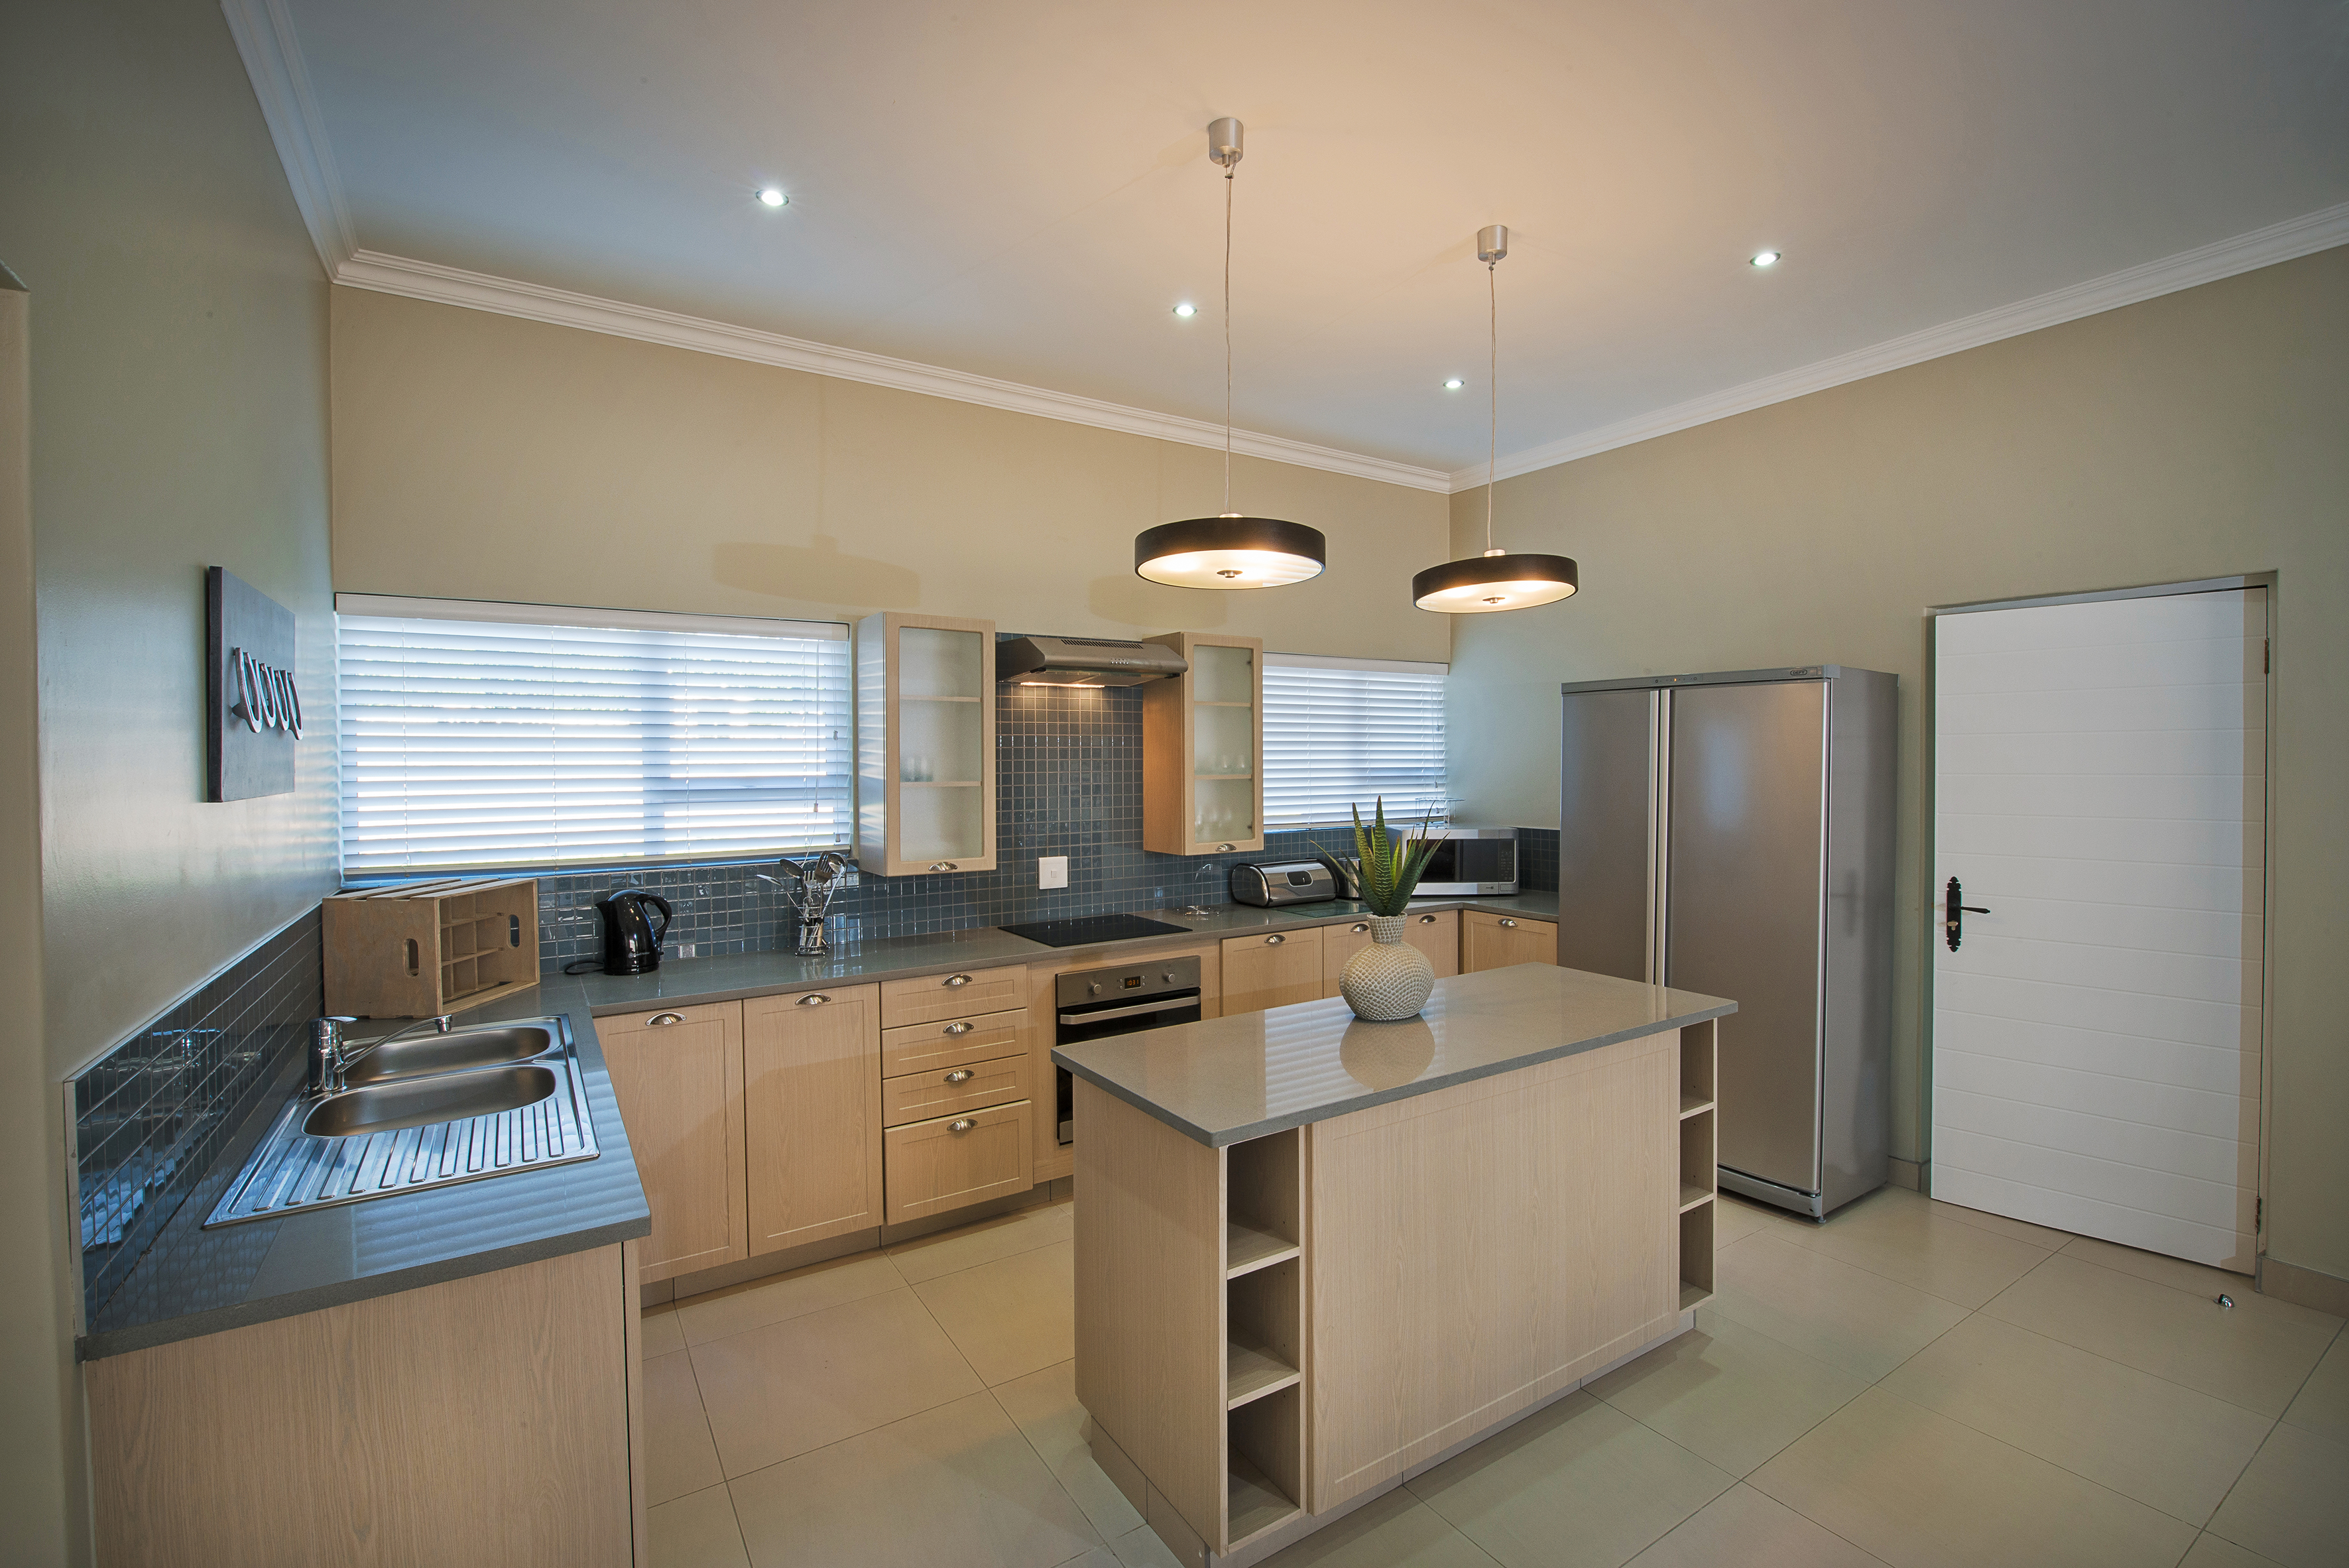 Fully equipped self-catering kitchen